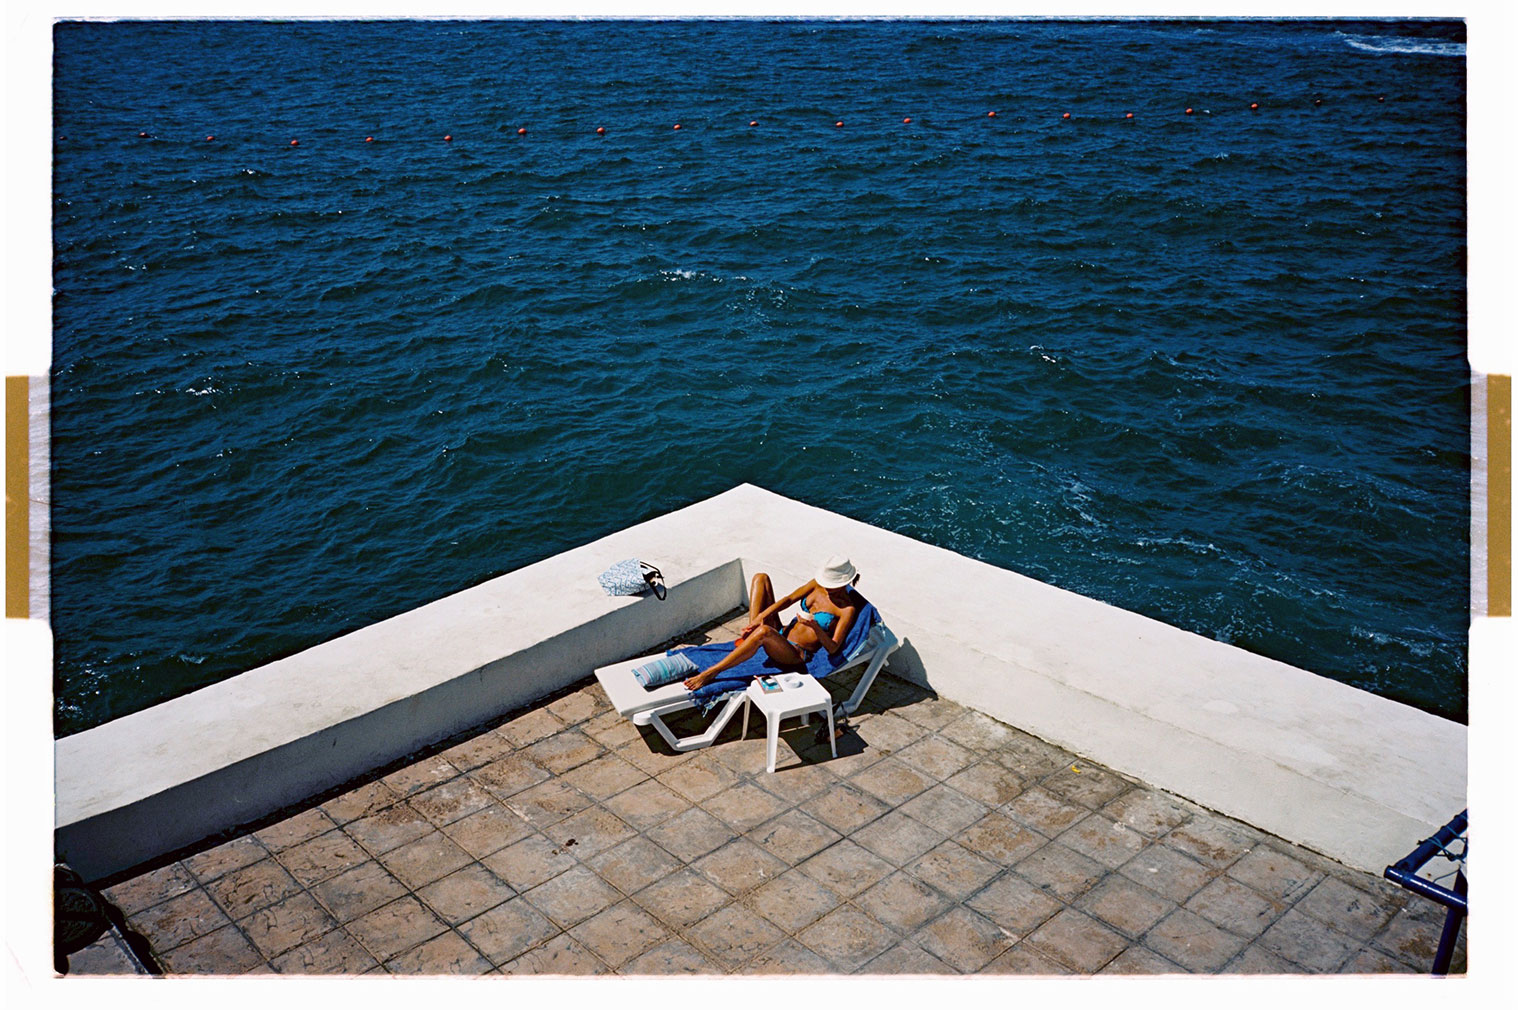 Six days at the Sporting Club - a photo essay by Cedric Bardawil